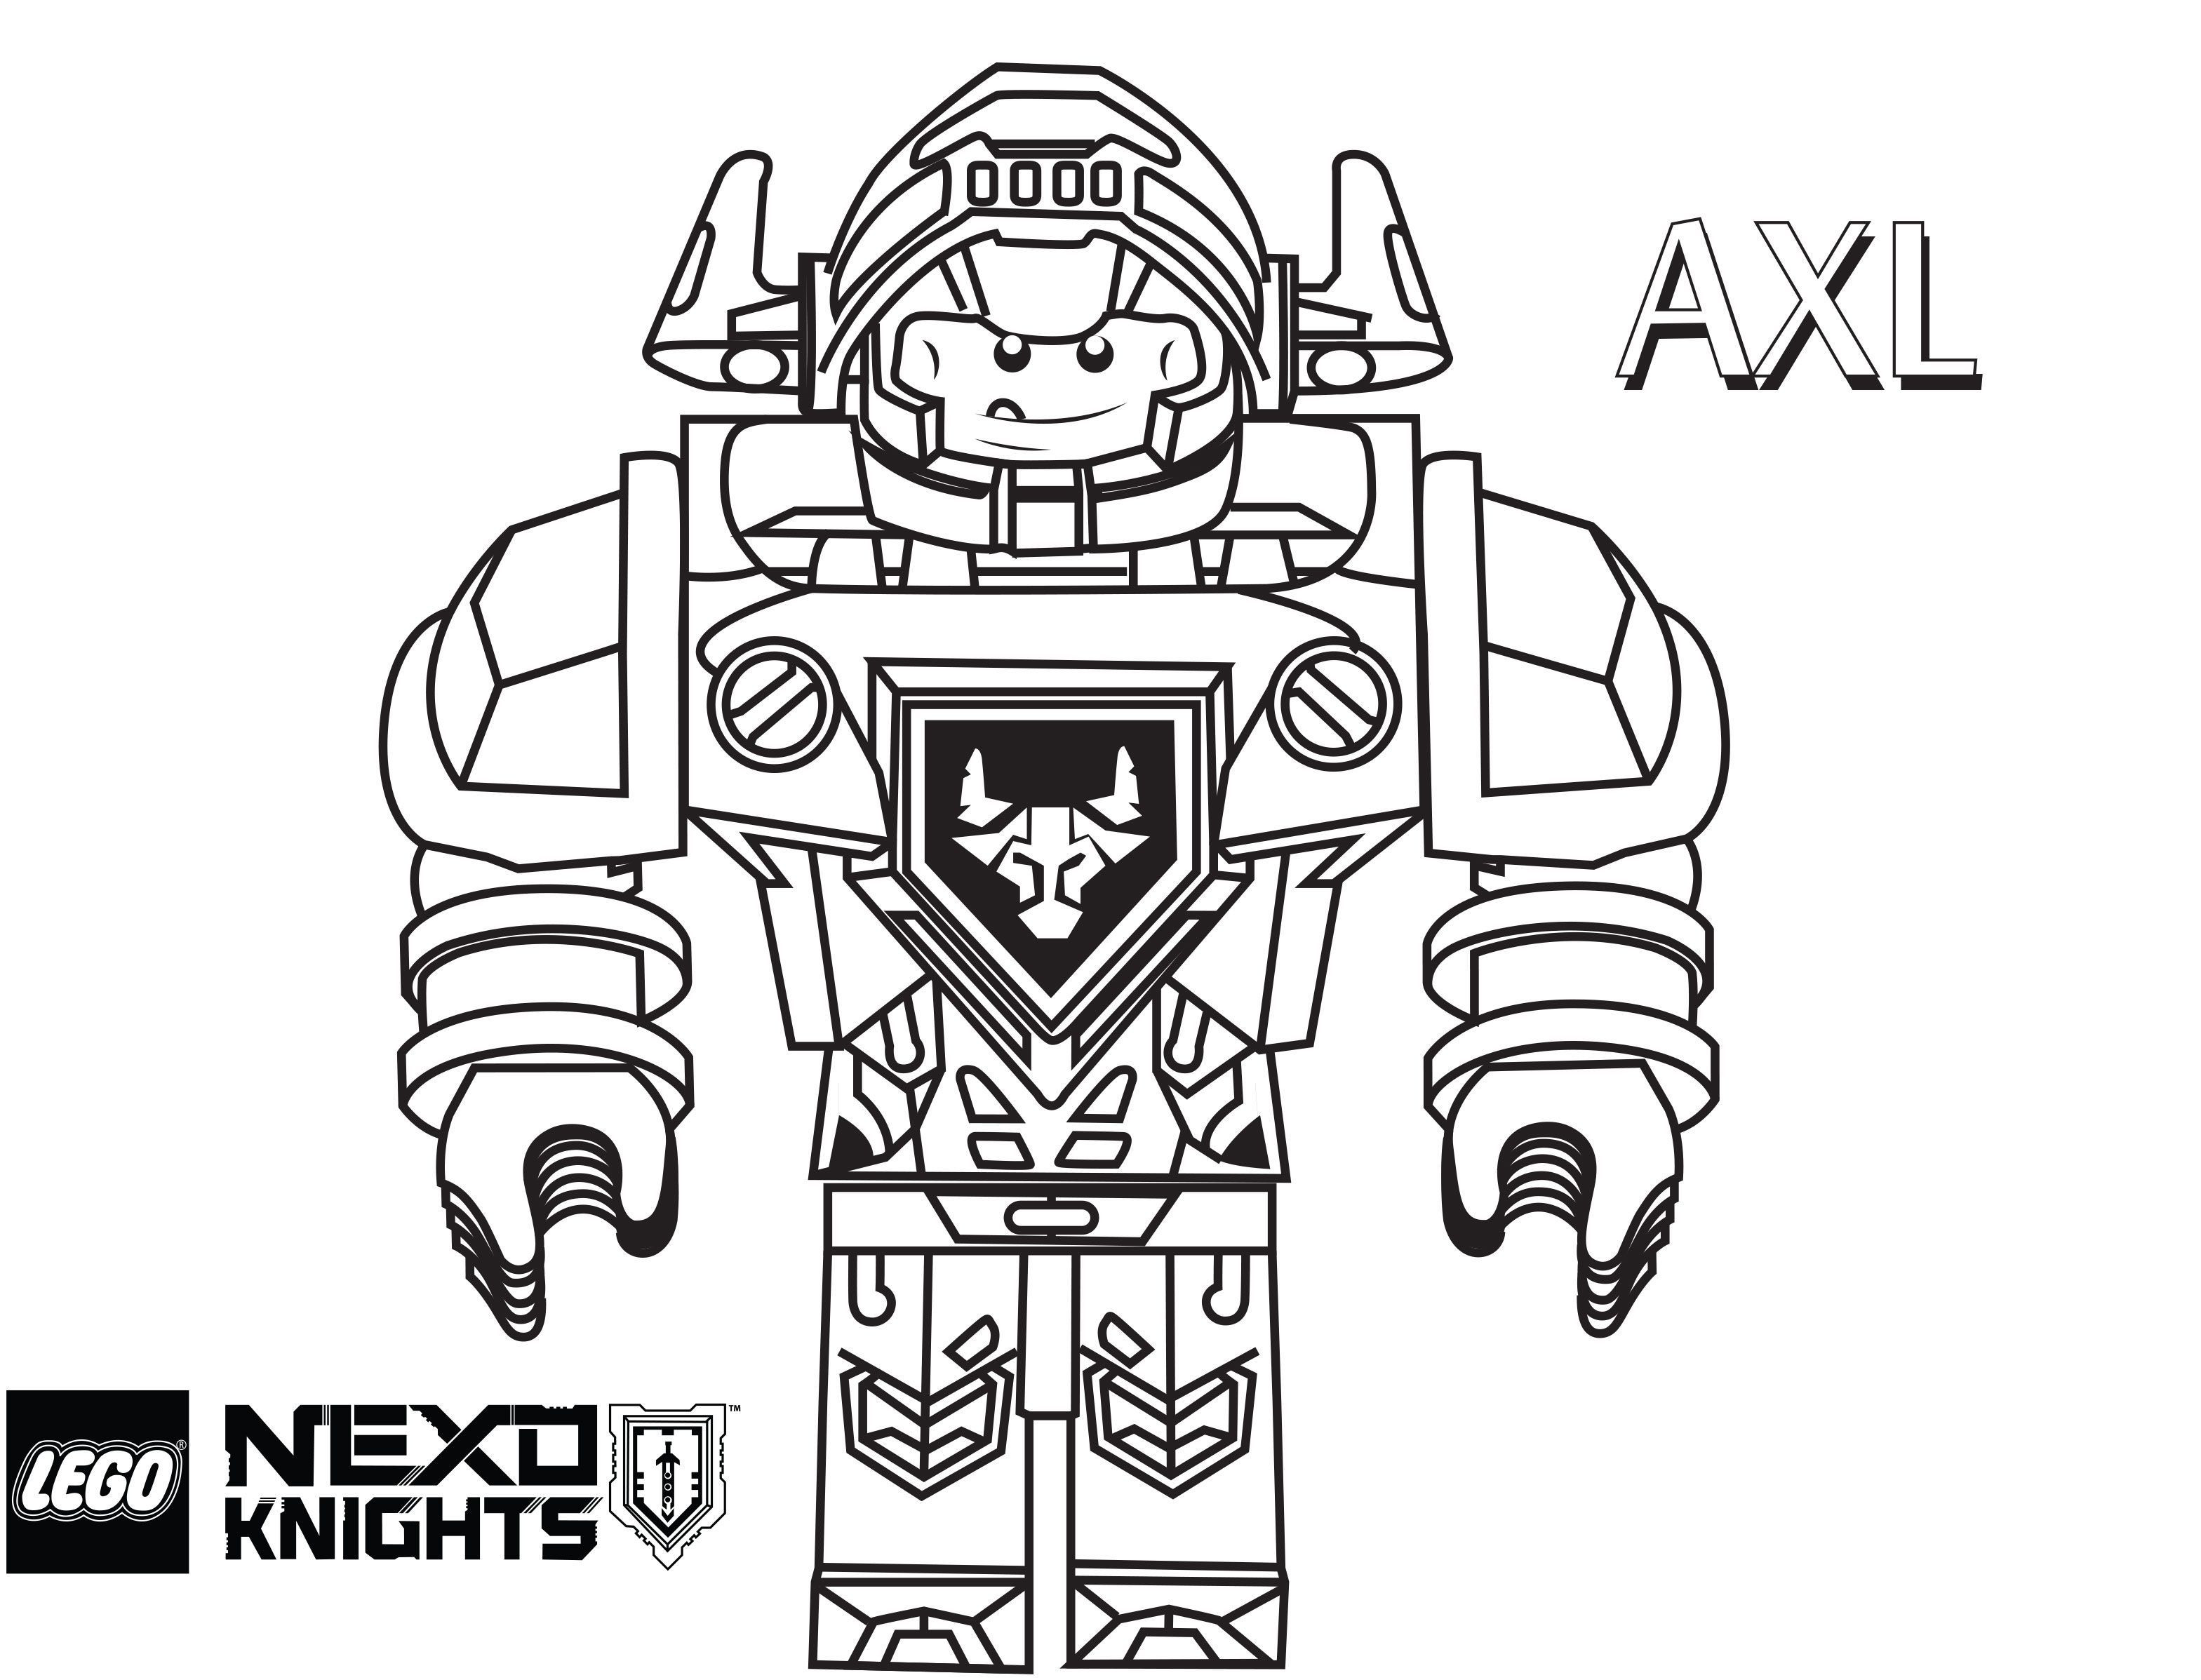 3137x2395 Lego Nexo Knights Coloring Pages Free Printable Exceptional Lego